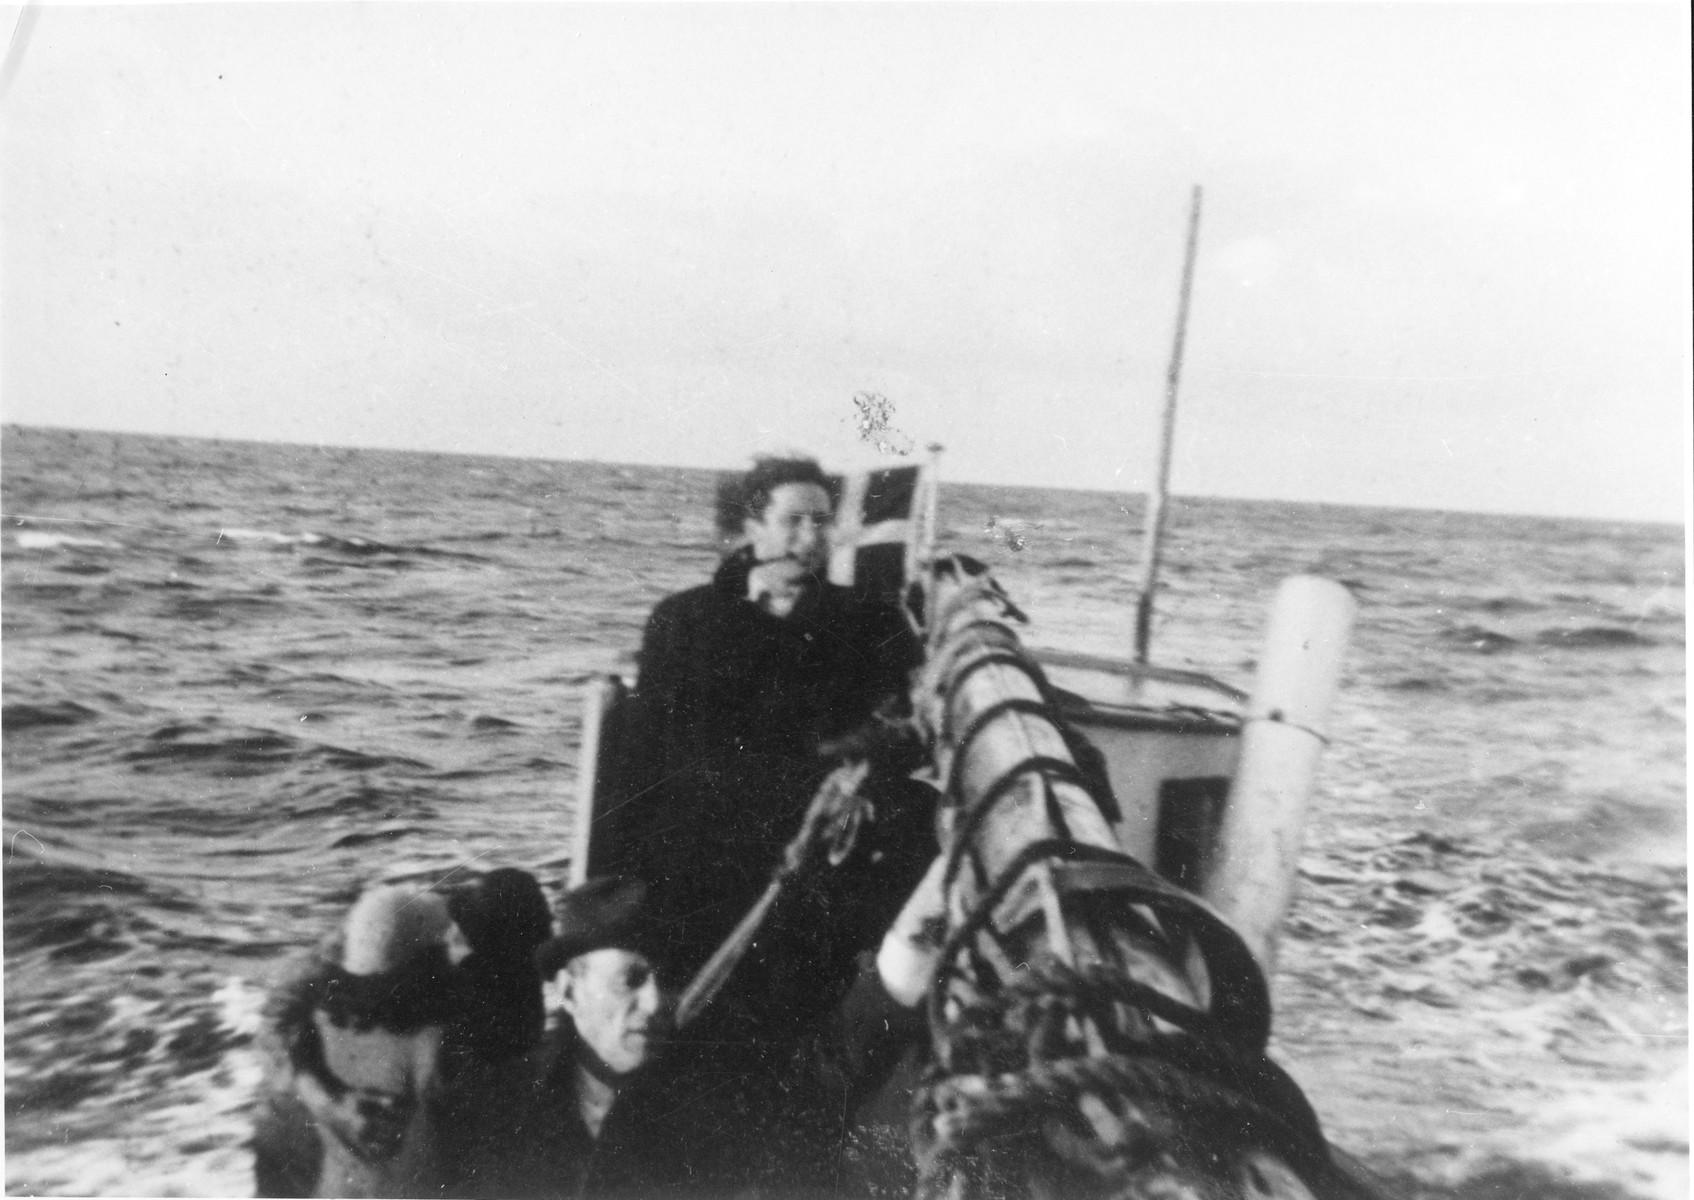 Jewish refugees from the island of Falster, Denmark, travel on a fishing boat en route to Ystad, Sweden.